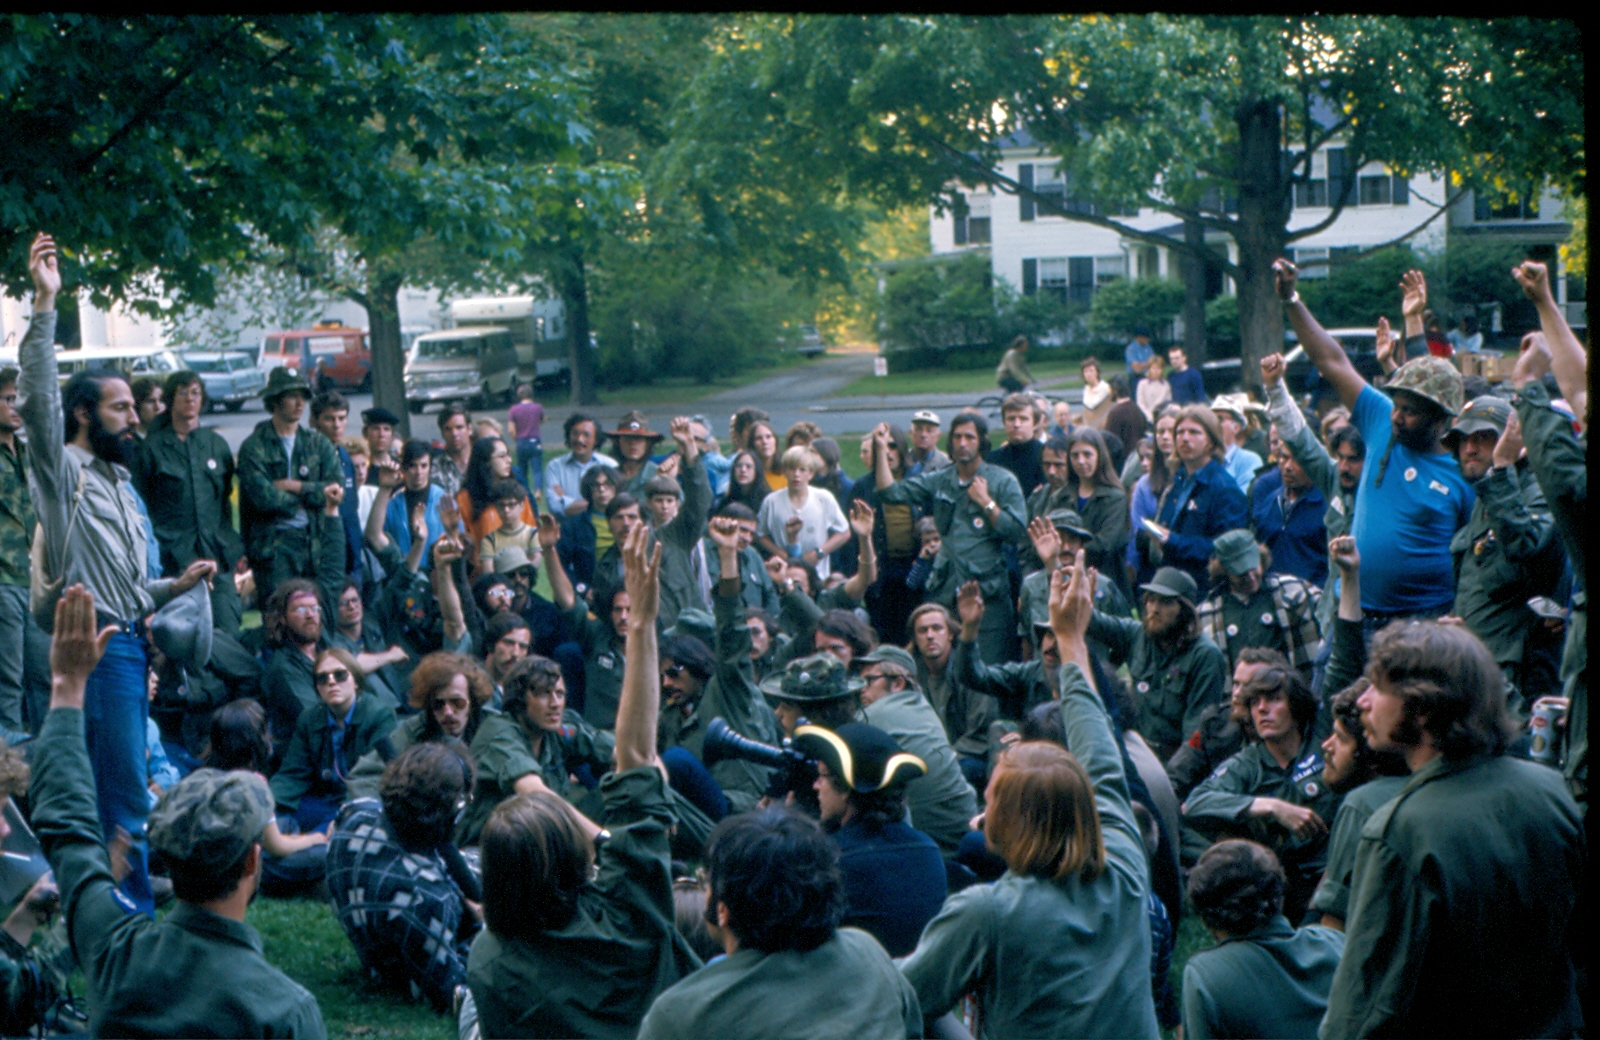 Chris Gregory (seated on lower right with Air Force wings on his fatigues) and other veterans take a vote on the green after being served an injunction from the Lexington Select Board about whether or not to commit civil disobedience. (Courtesy Richard Robbat)